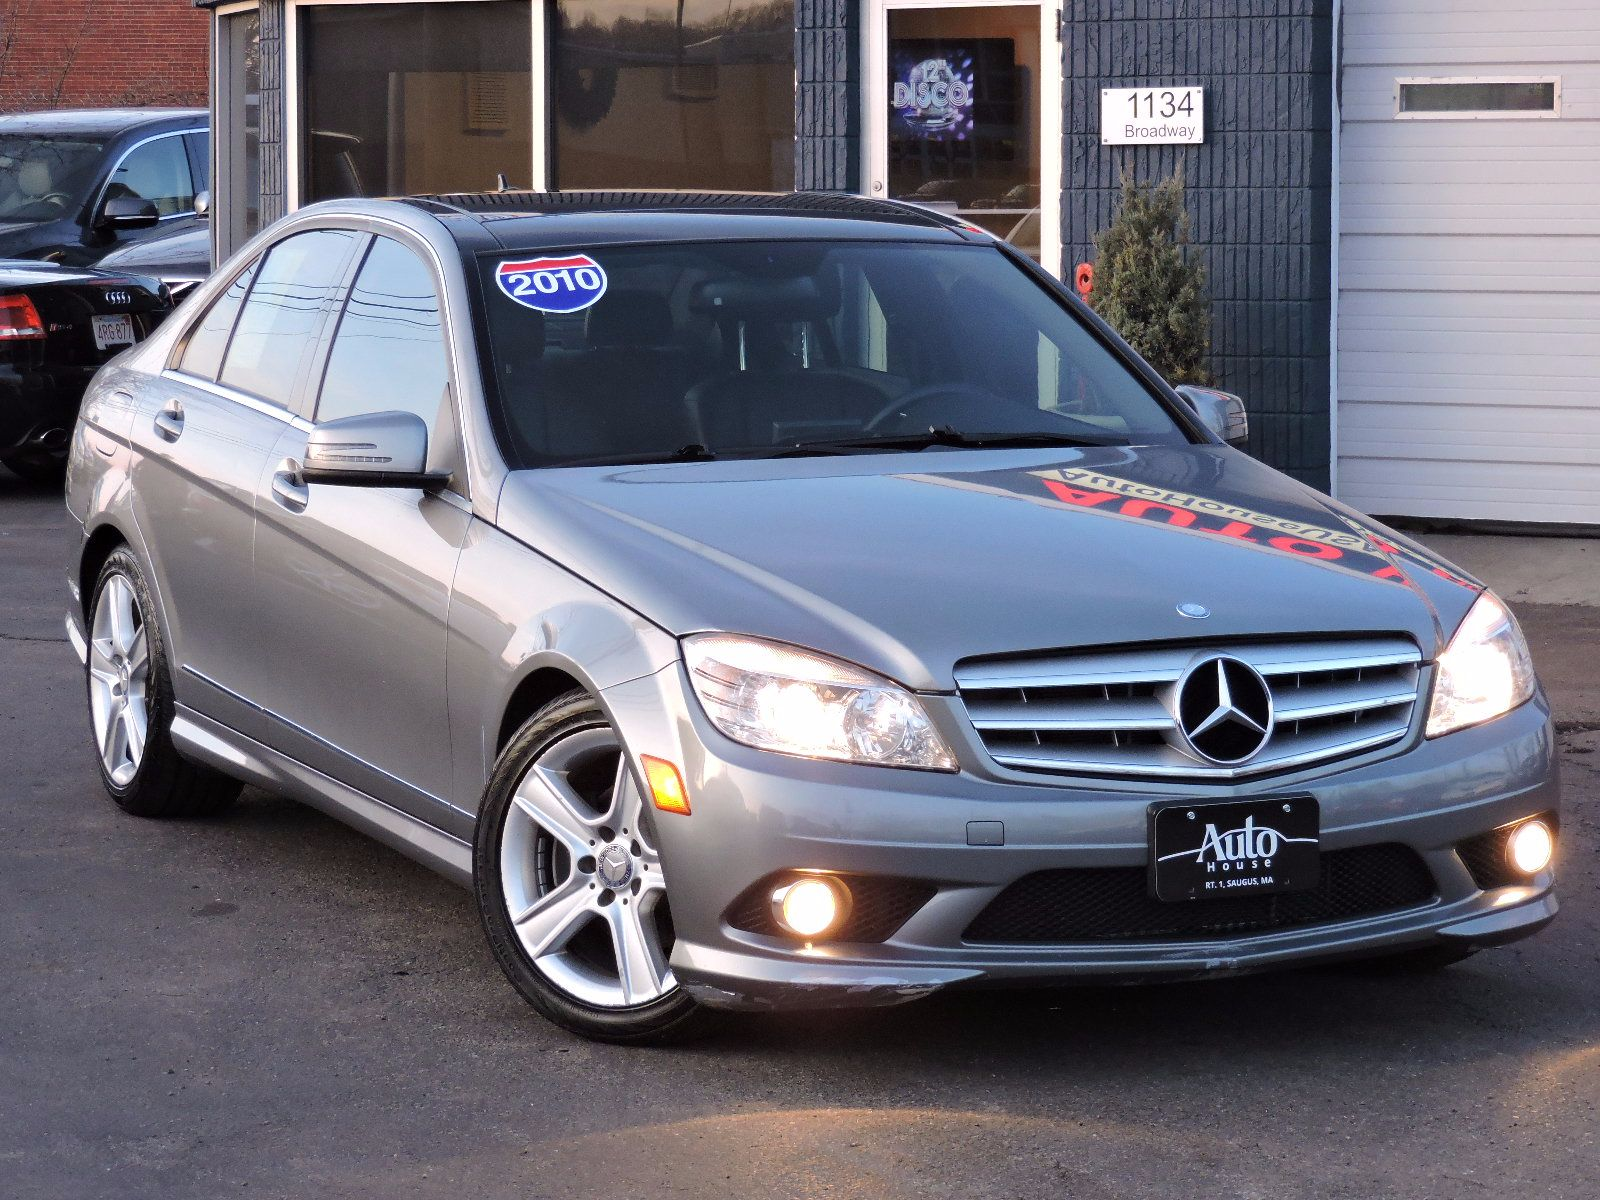 Used 2010 mercedes benz c class c300 sport at saugus auto mall for 2010 mercedes benz c300 review